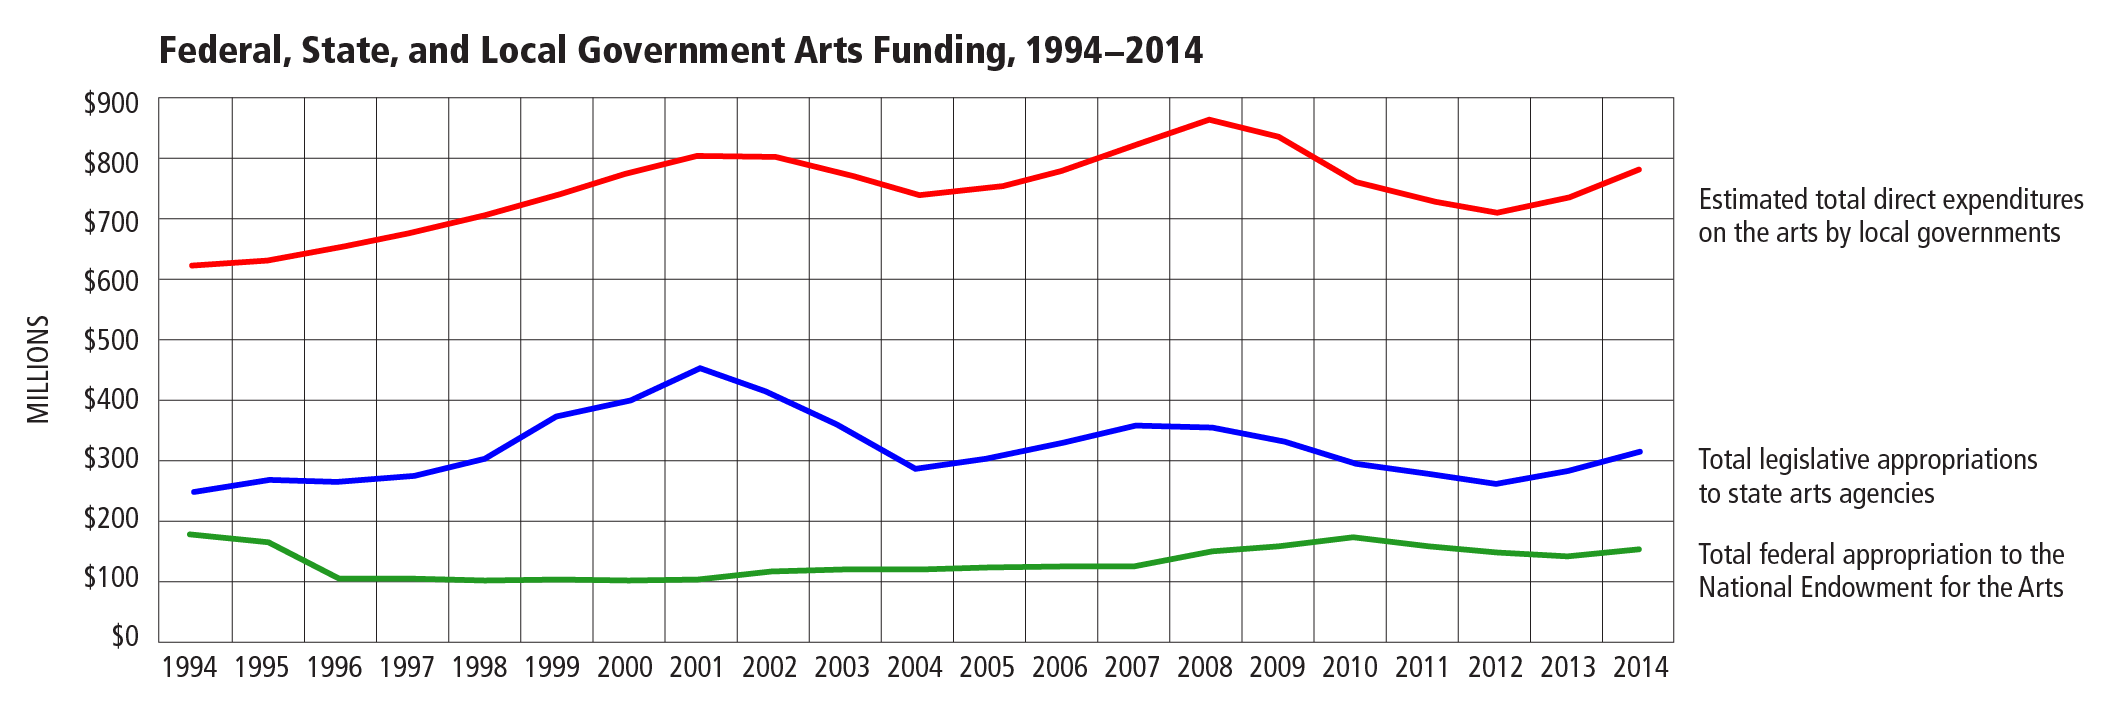 Federal, State, and Local Government Arts Funding, 1994-2014